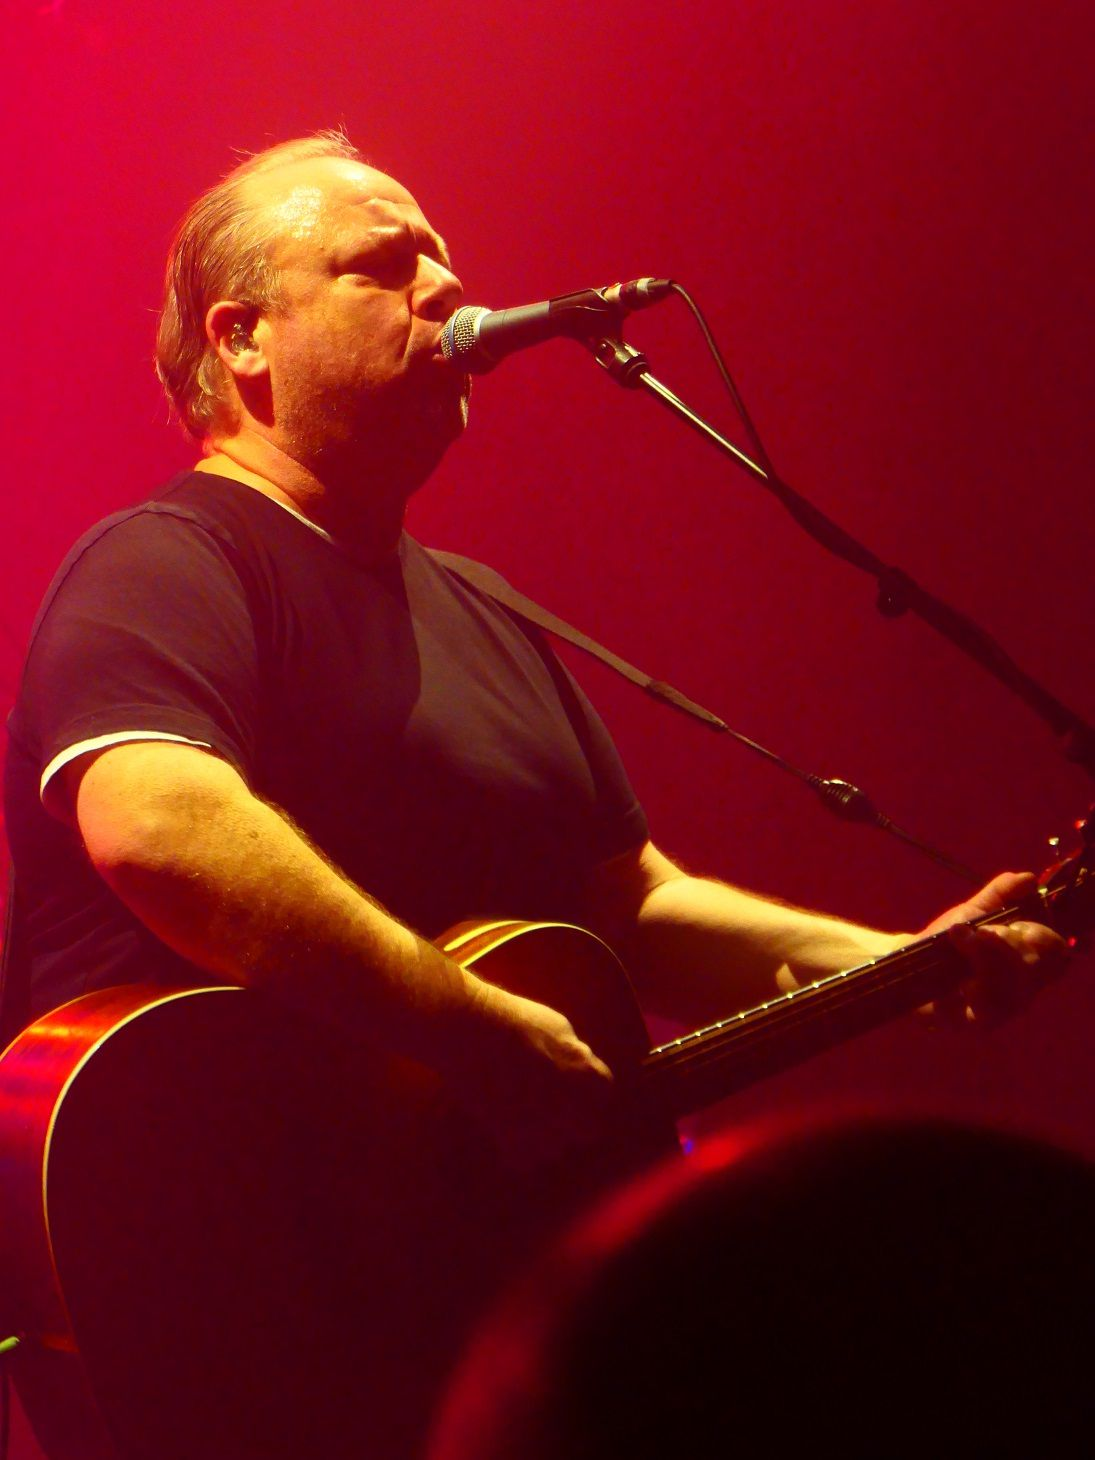 L'OLYMPIA, 19 oct. : Pixies gone to heaven